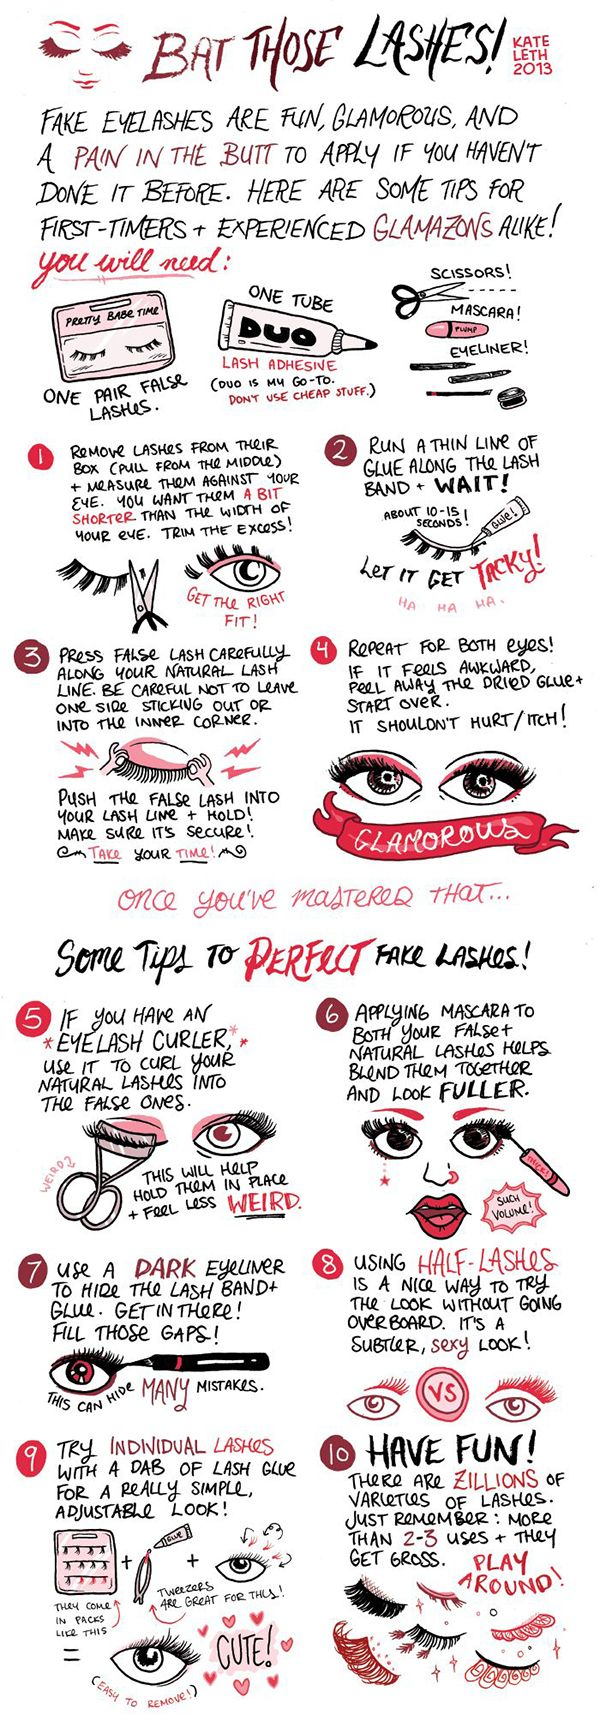 18 Hacks, Tips and Tricks On How To Apply False Eyelashes Perfectly